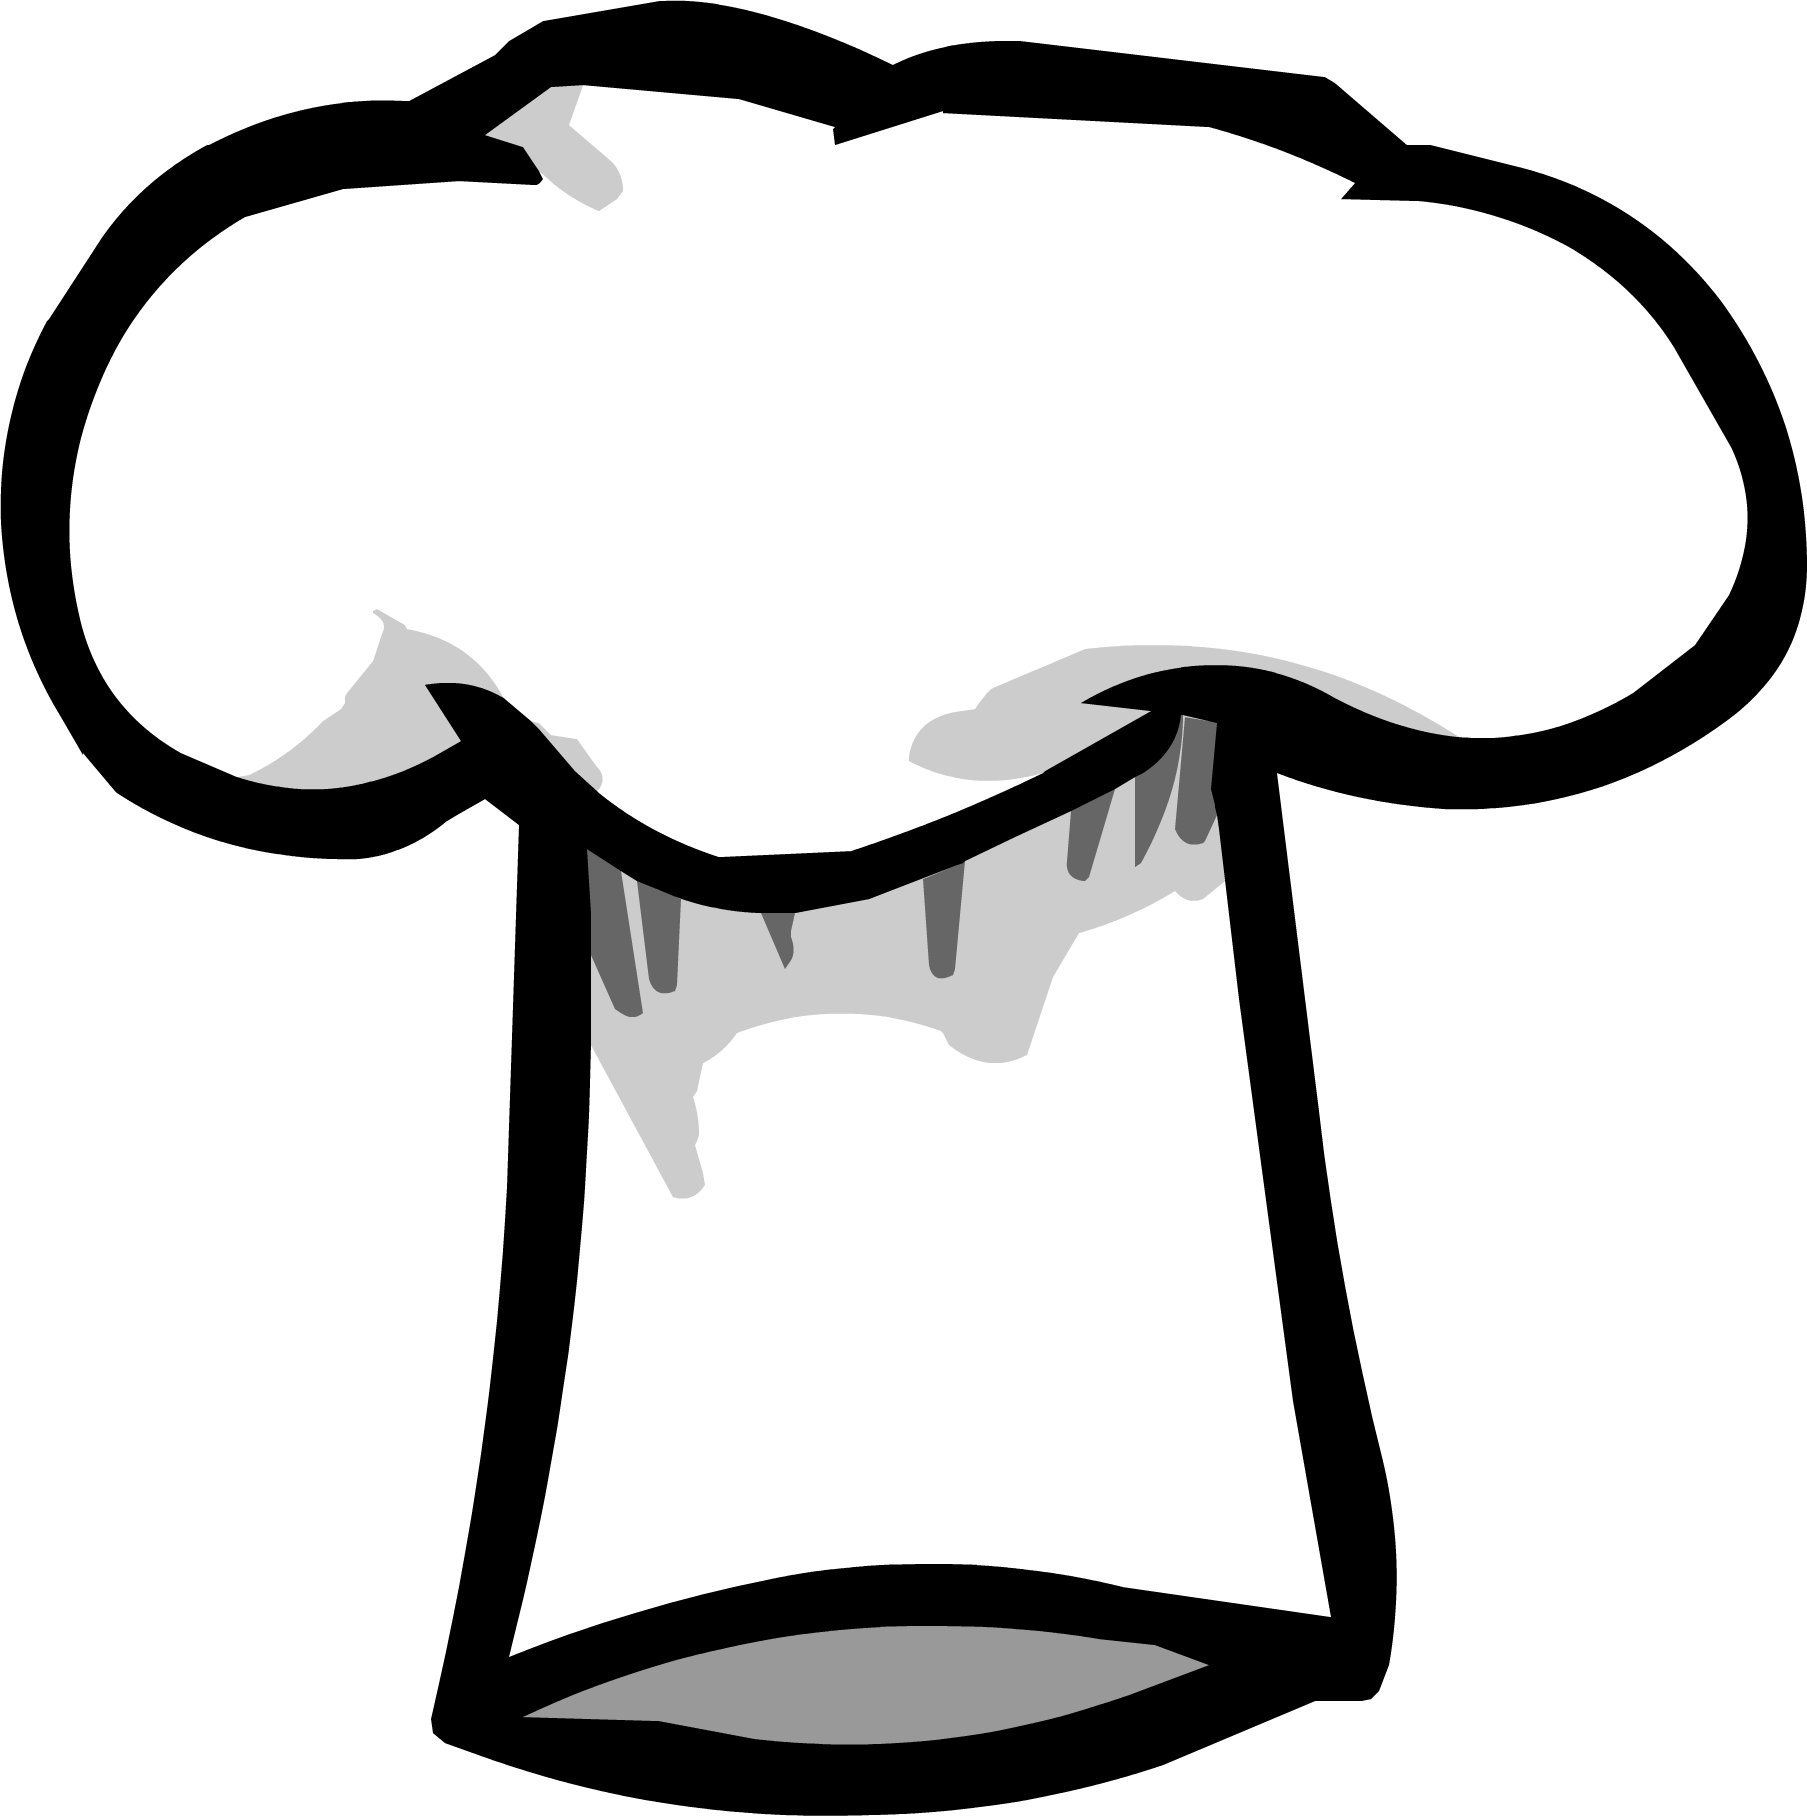 banner black and white Clipart chef hat. Picture of club penguin.